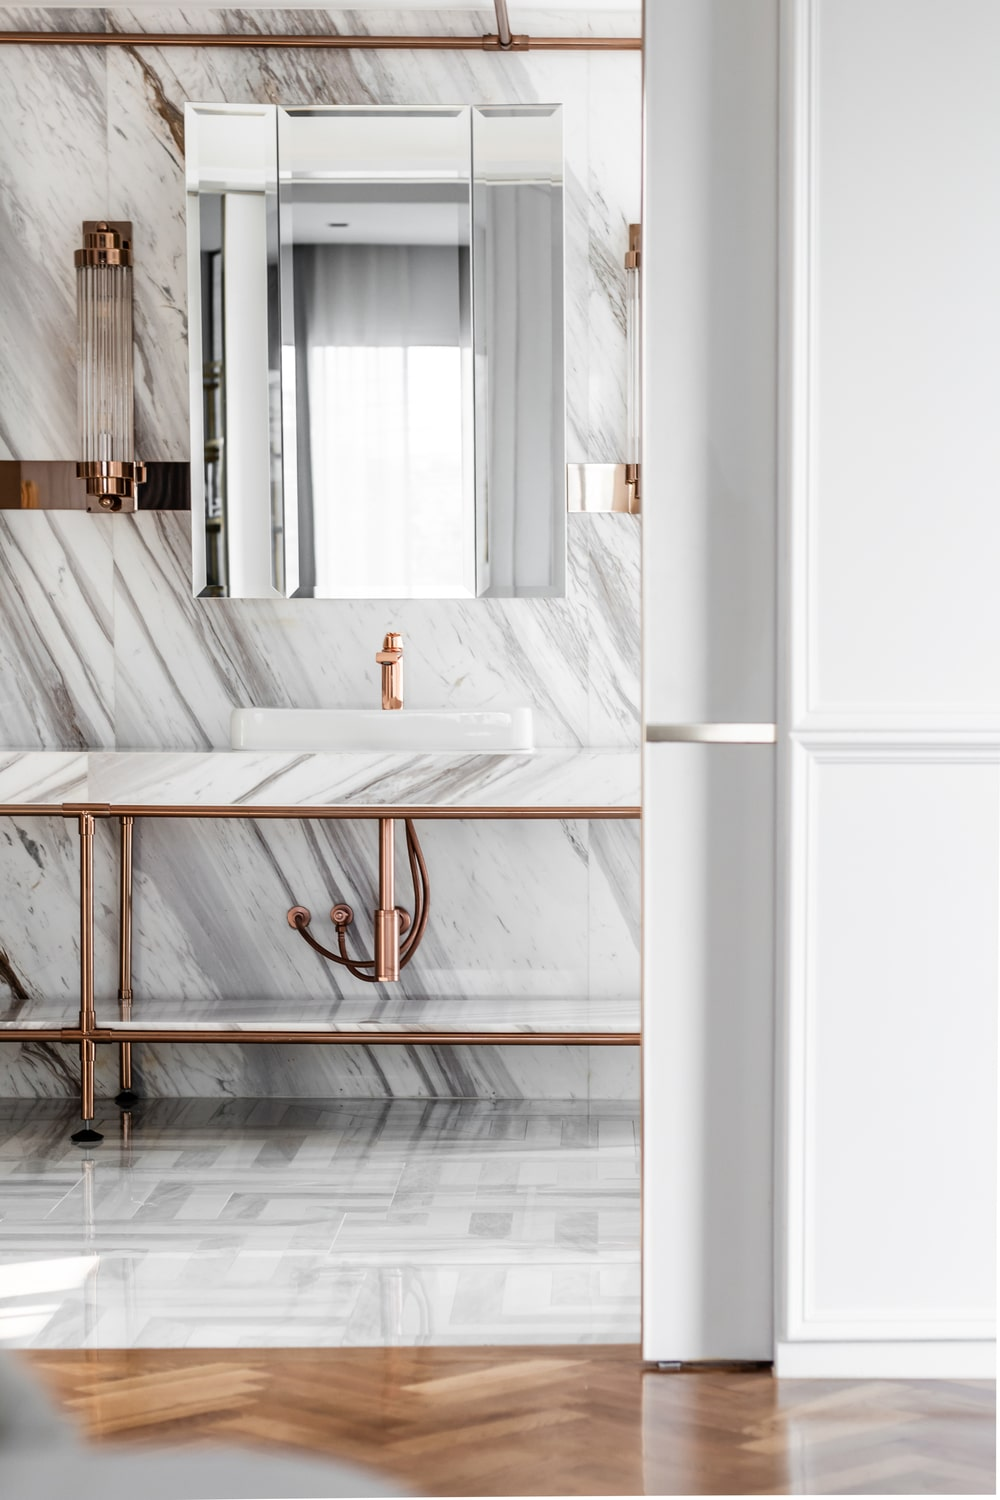 The white marble wall behind the vanity area also matches with the countertop of the two-sink vanity.